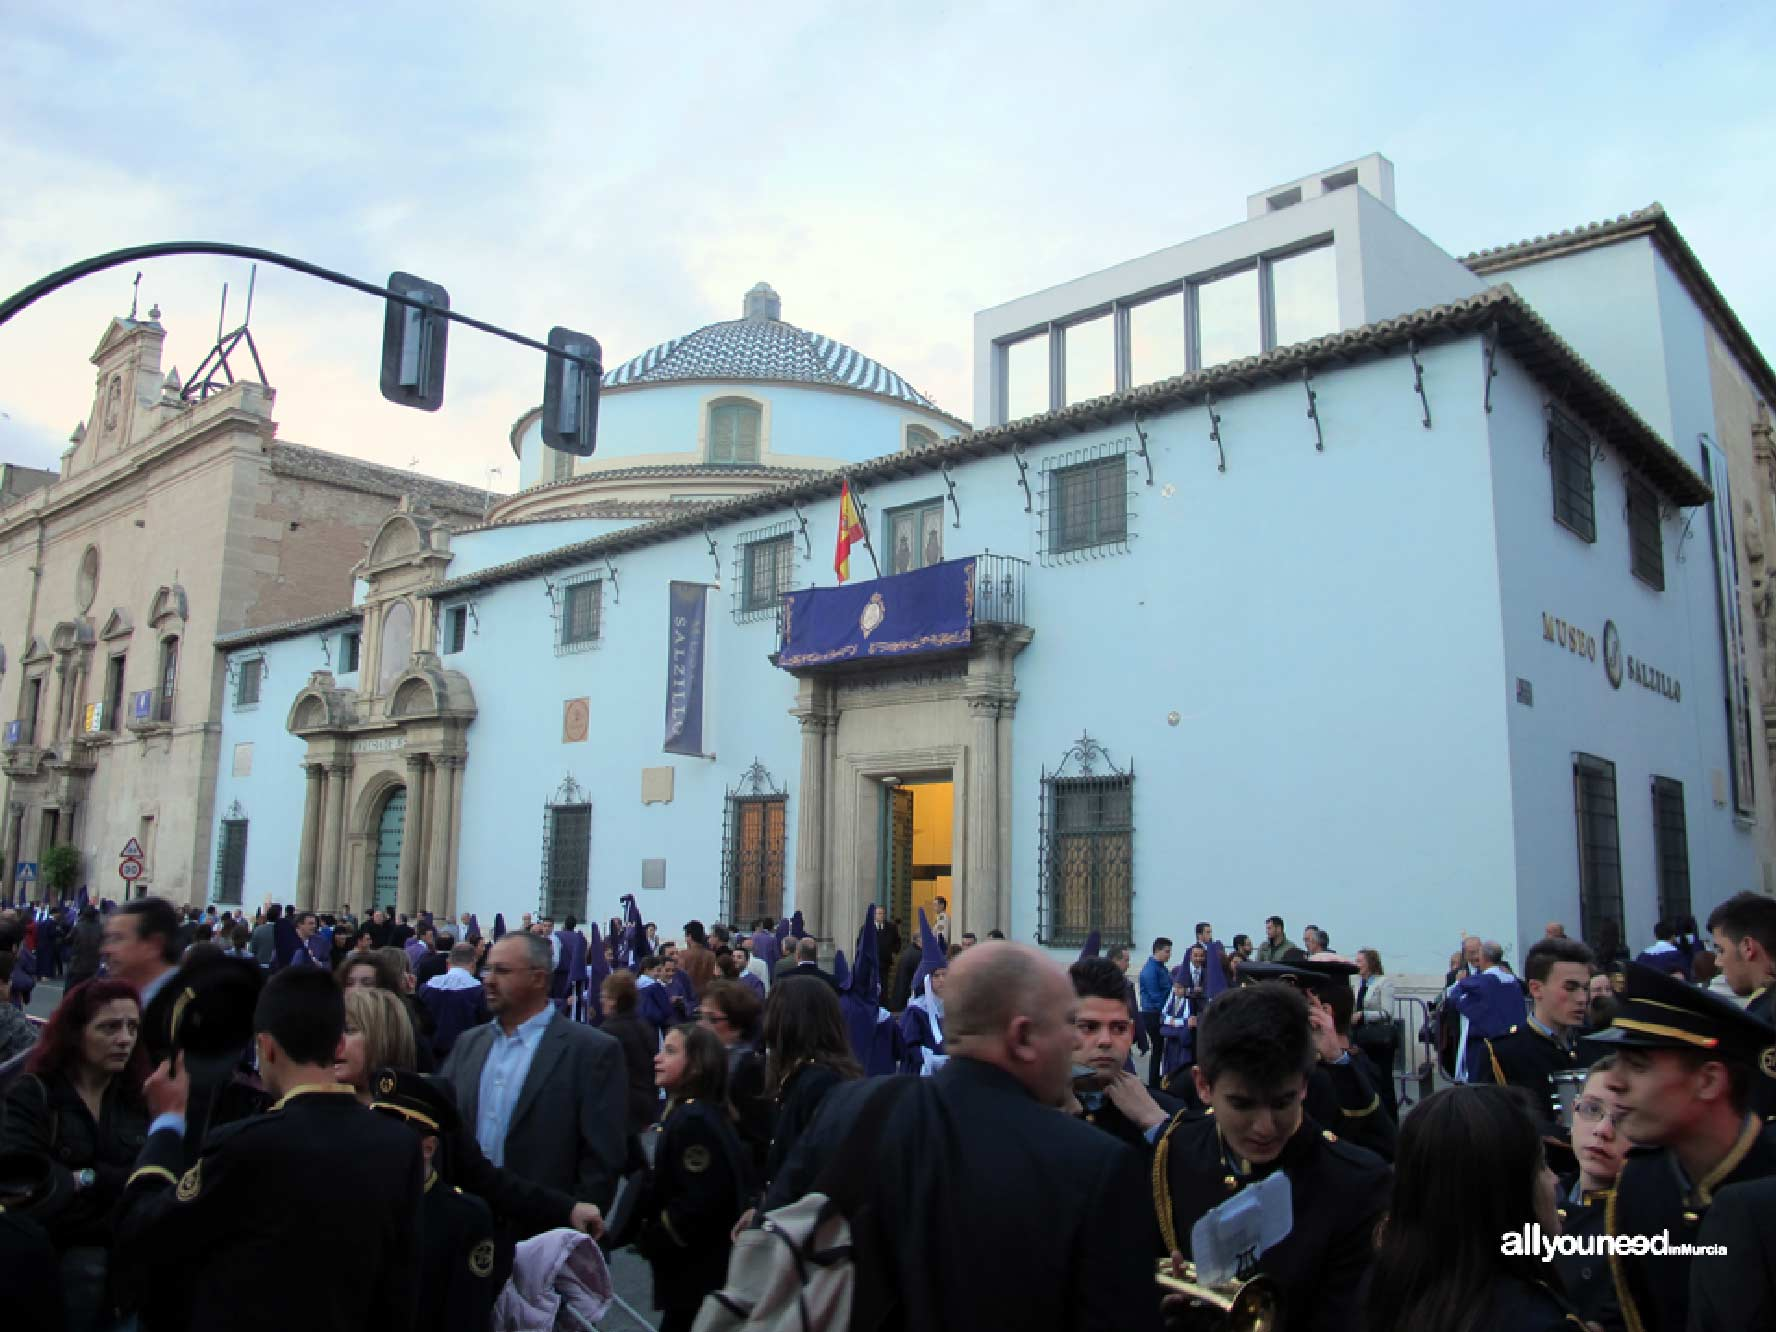 Church of Our Father Jesus in Murcia. Good Friday